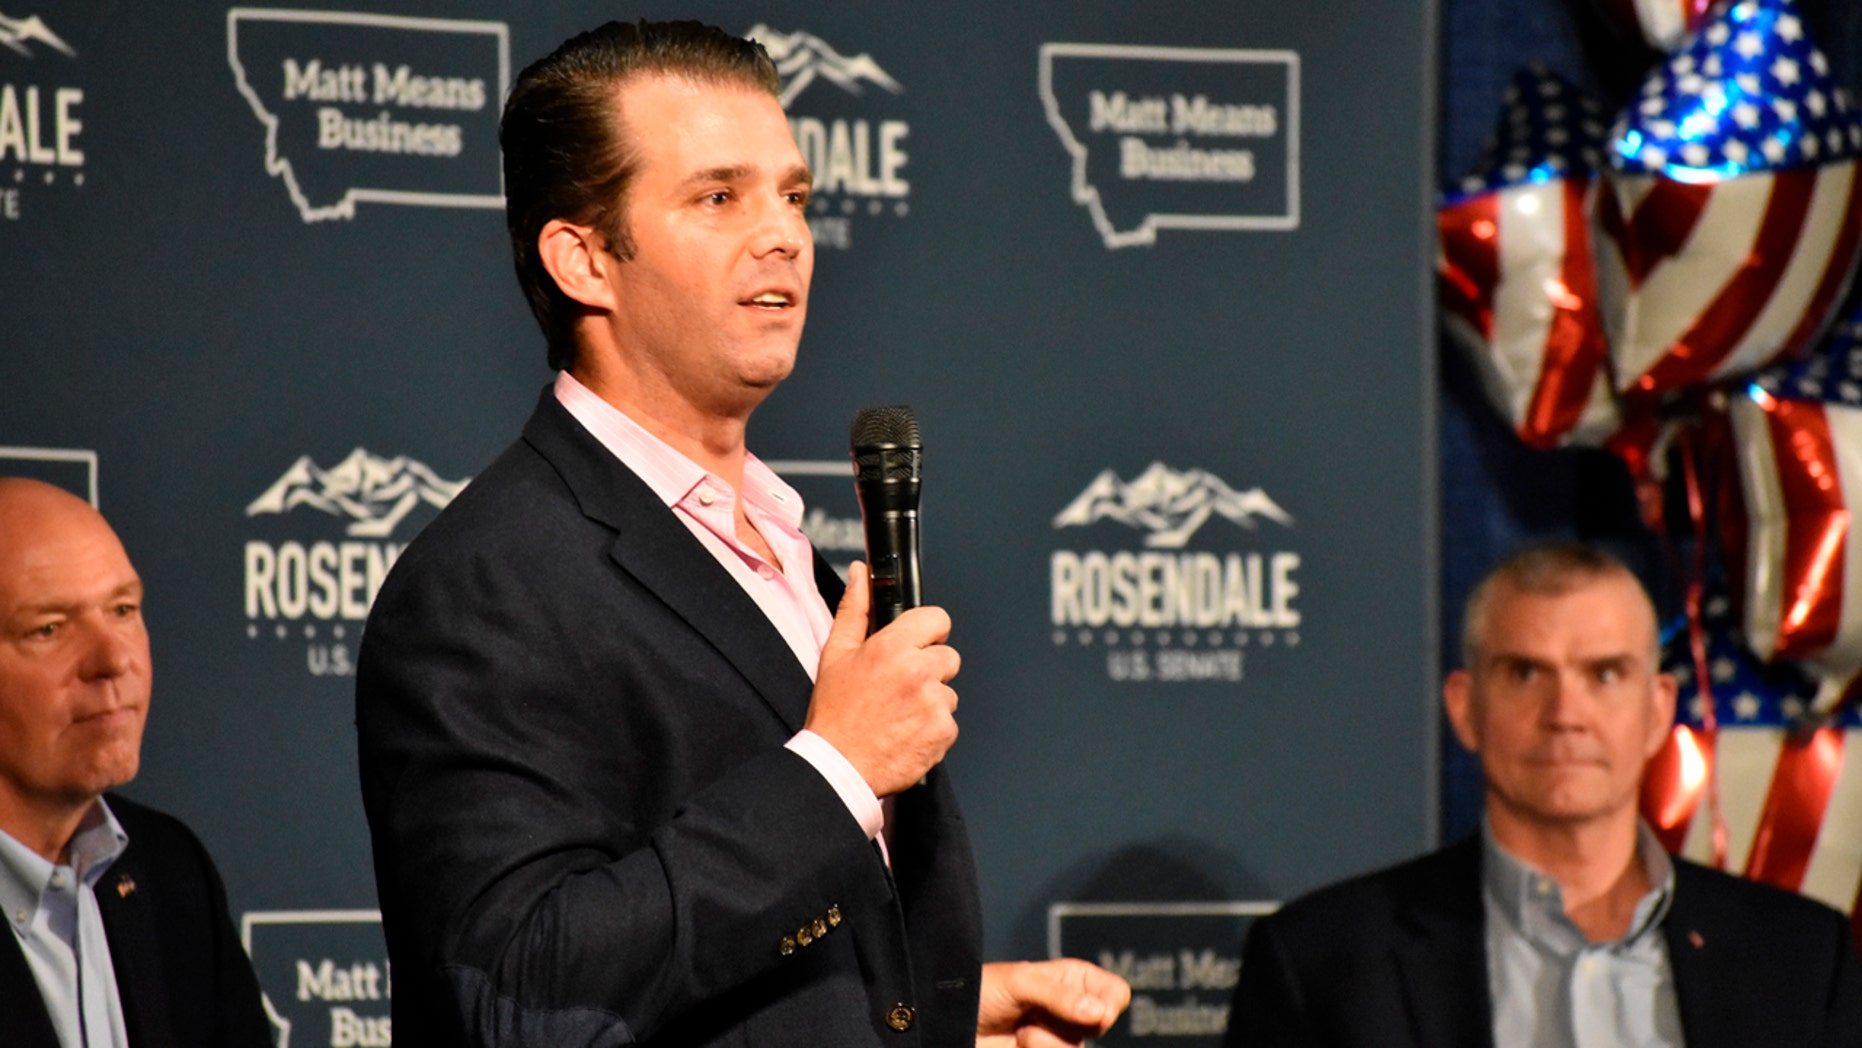 Donald Trump Jr., center, speaks to Montana Republicans at the state party's annual convention as U.S Rep. Greg Gianforte, left, and U.S. Senate candidate Matt Rosendale, right, look on, in Billings, June 22, 2018.